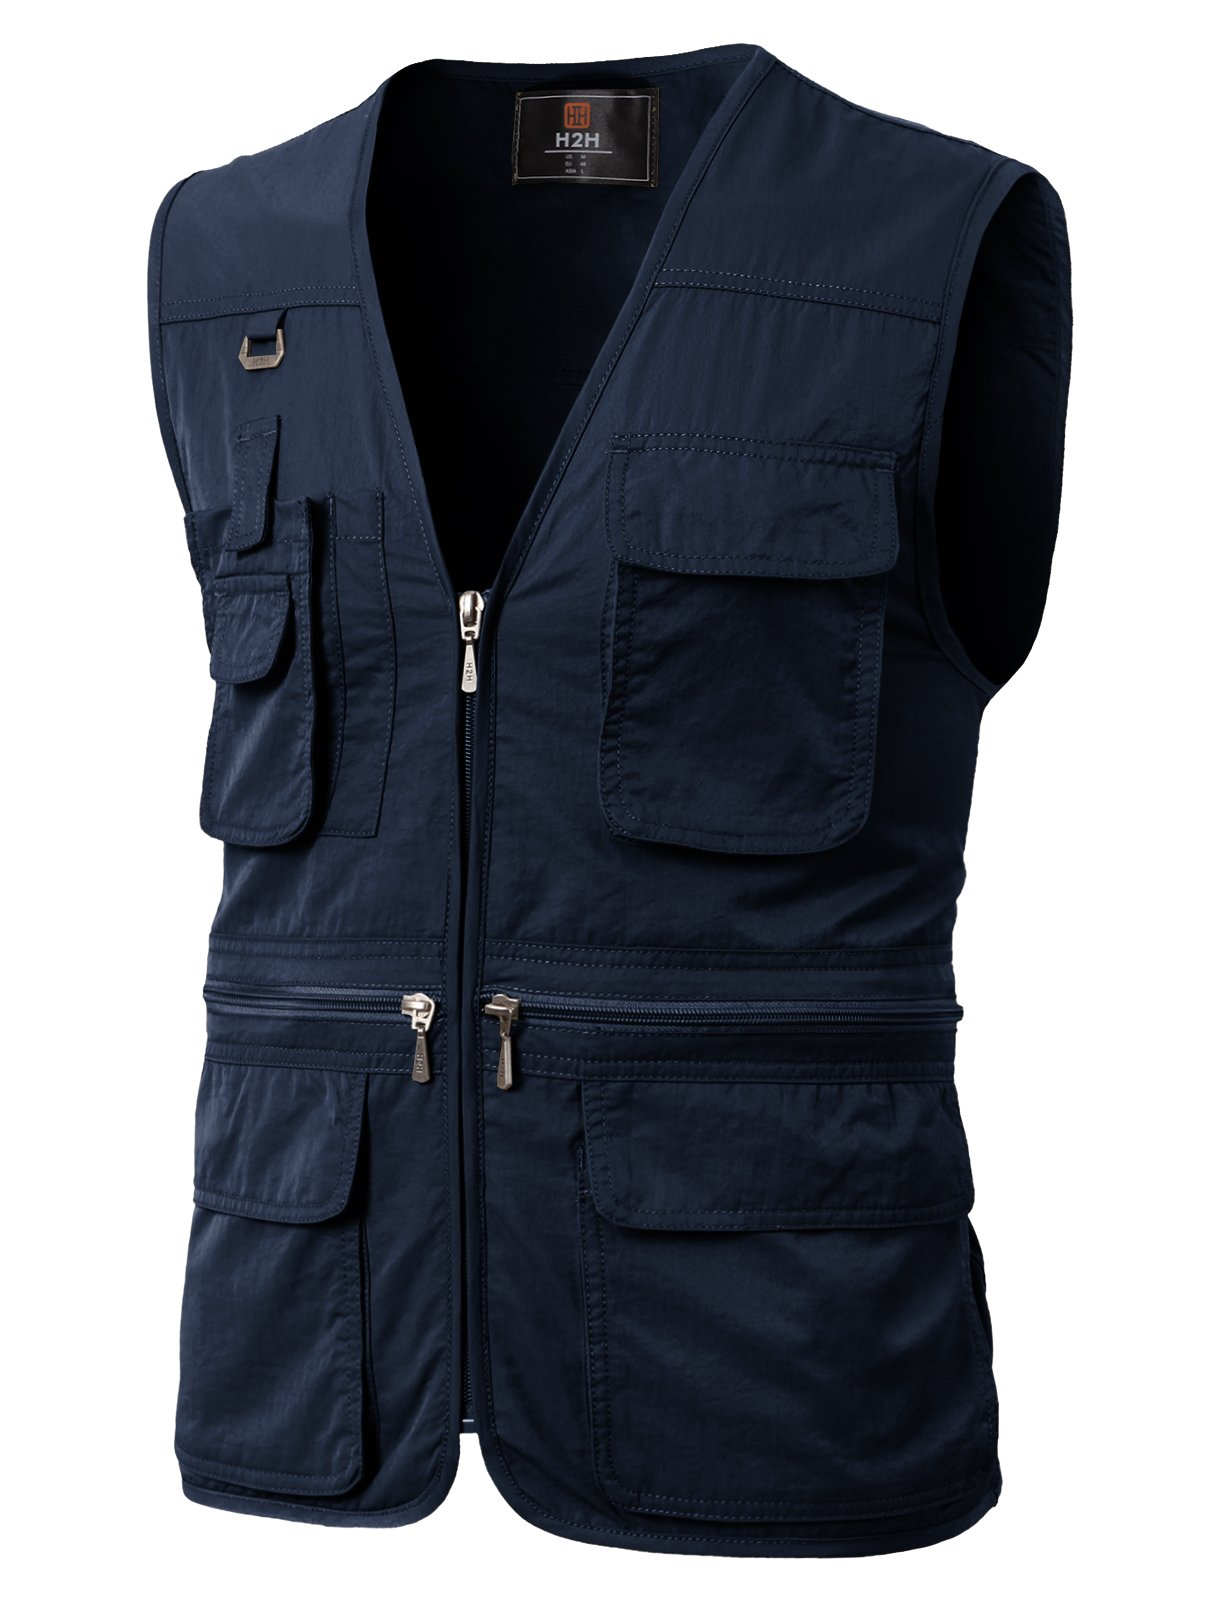 H2H Men's Stone Washed Denim Multi-Pocketed Fishing Vest Navy US 3XL/Asia 4XL (KMOV0113) by H2H